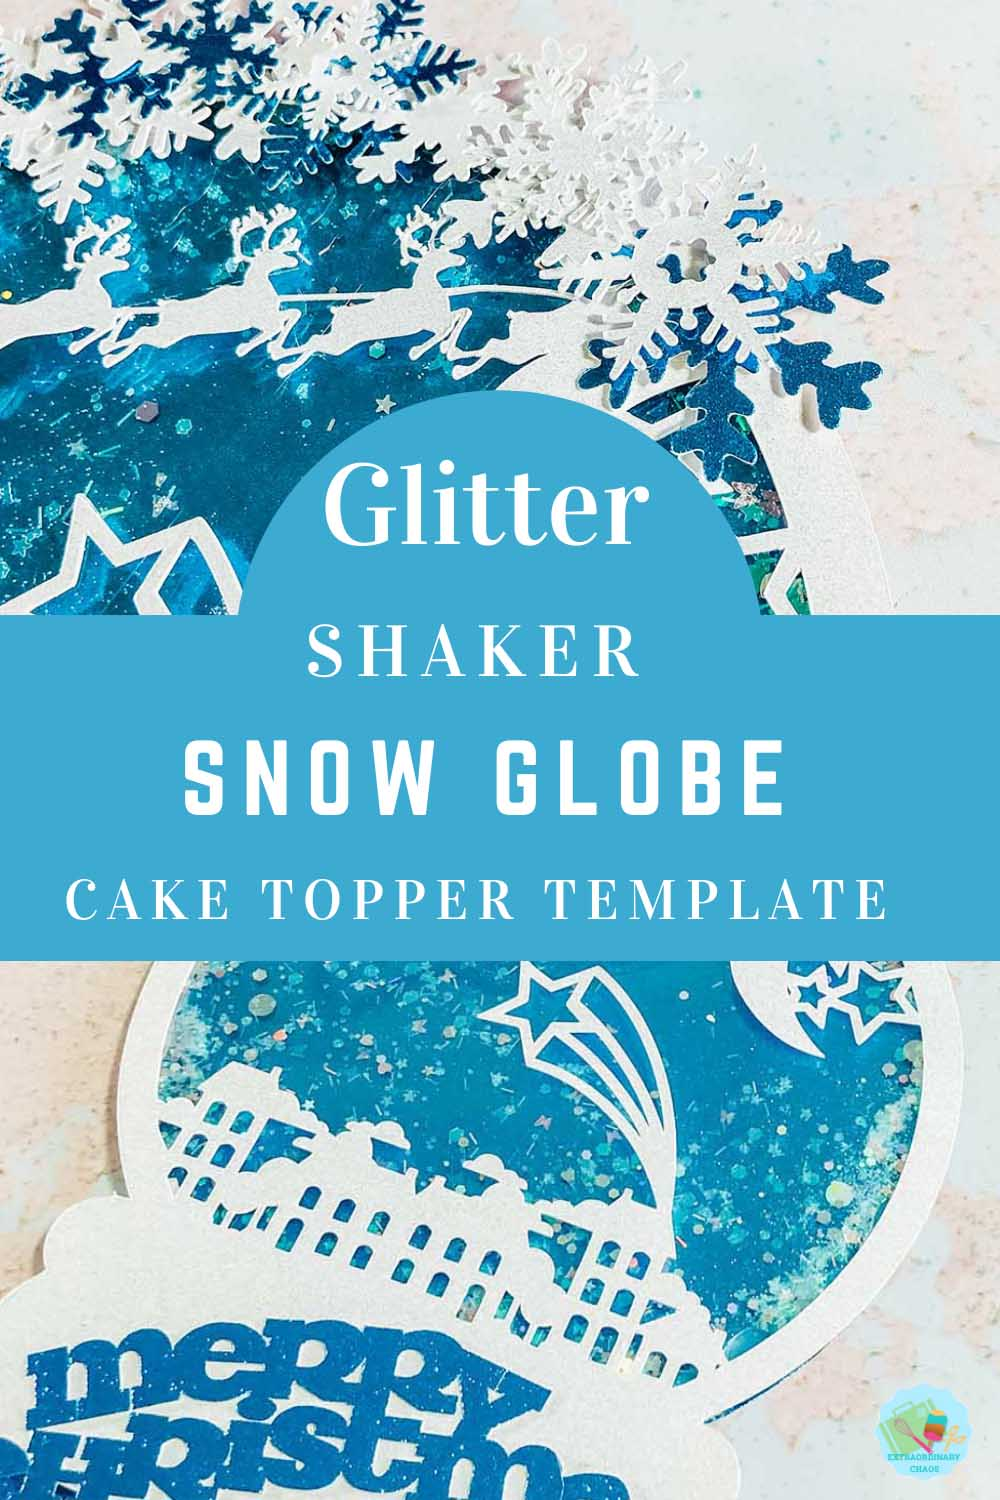 Downloadable Cricut Snow Globe Template for a Glitter Shaker Christmas Cake Topper copy